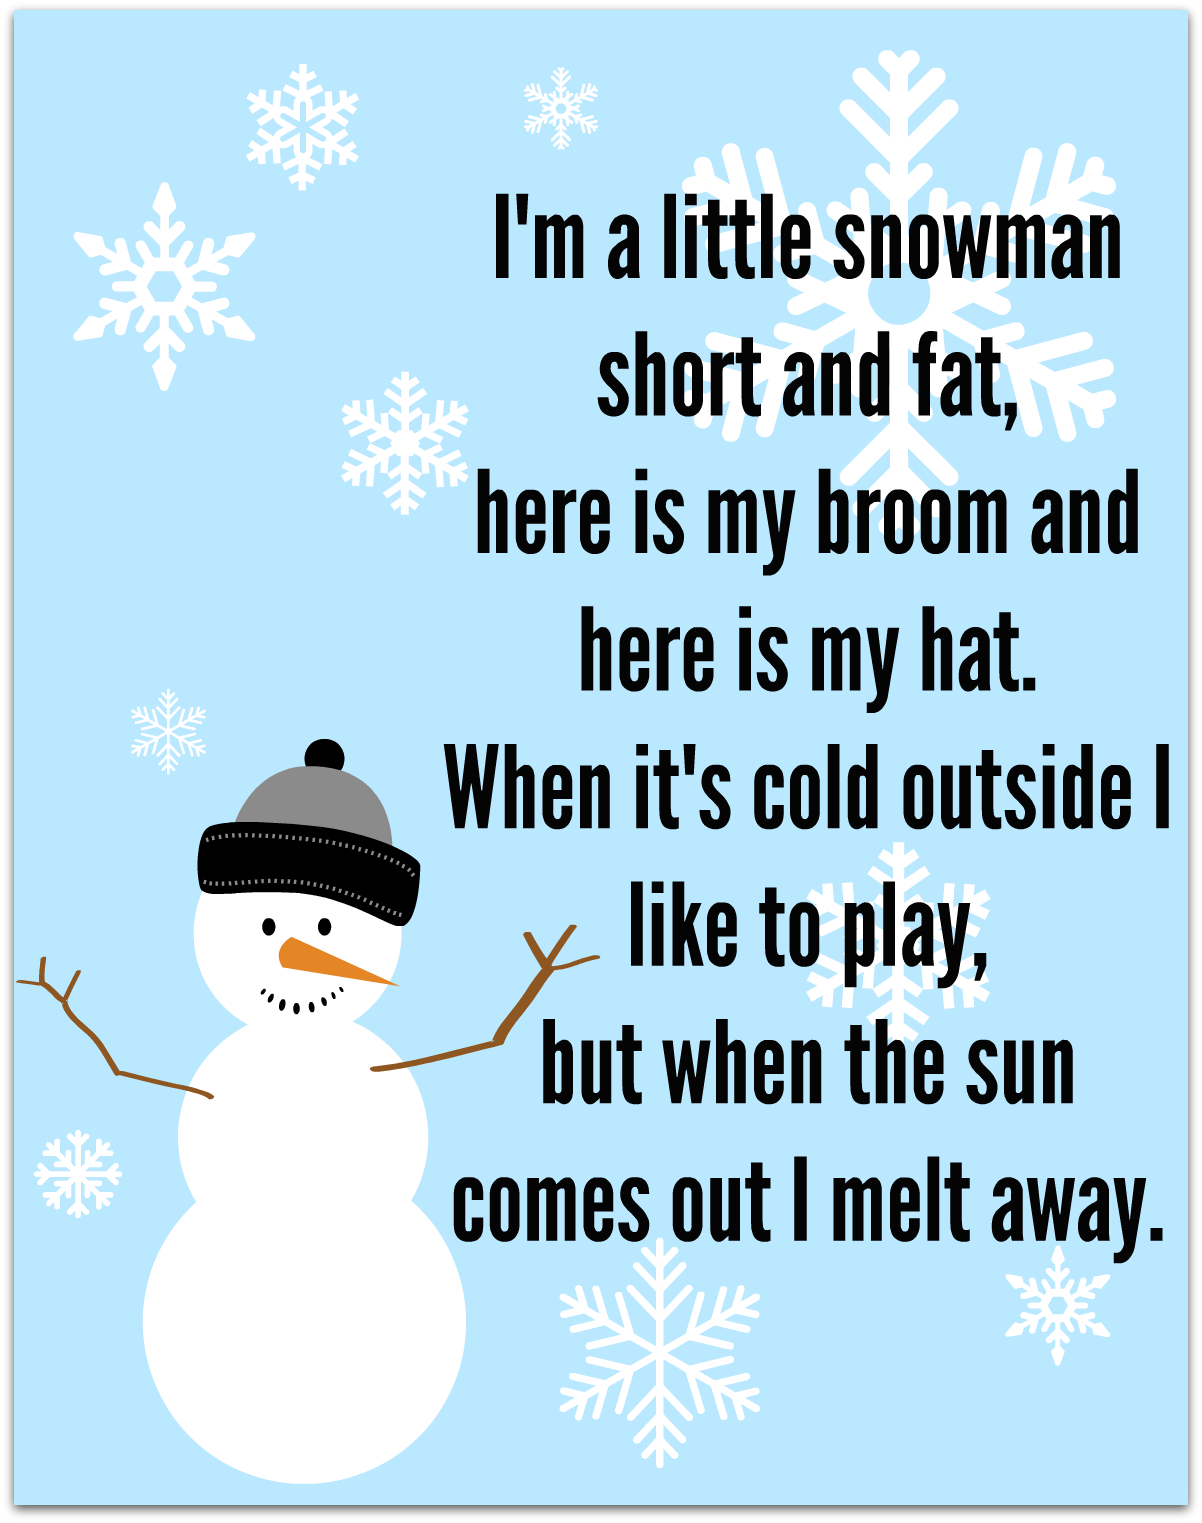 graphic relating to Frosty the Snowman Lyrics Printable identified as Snowman Tune - No cost Printable - No Season For Flash Playing cards